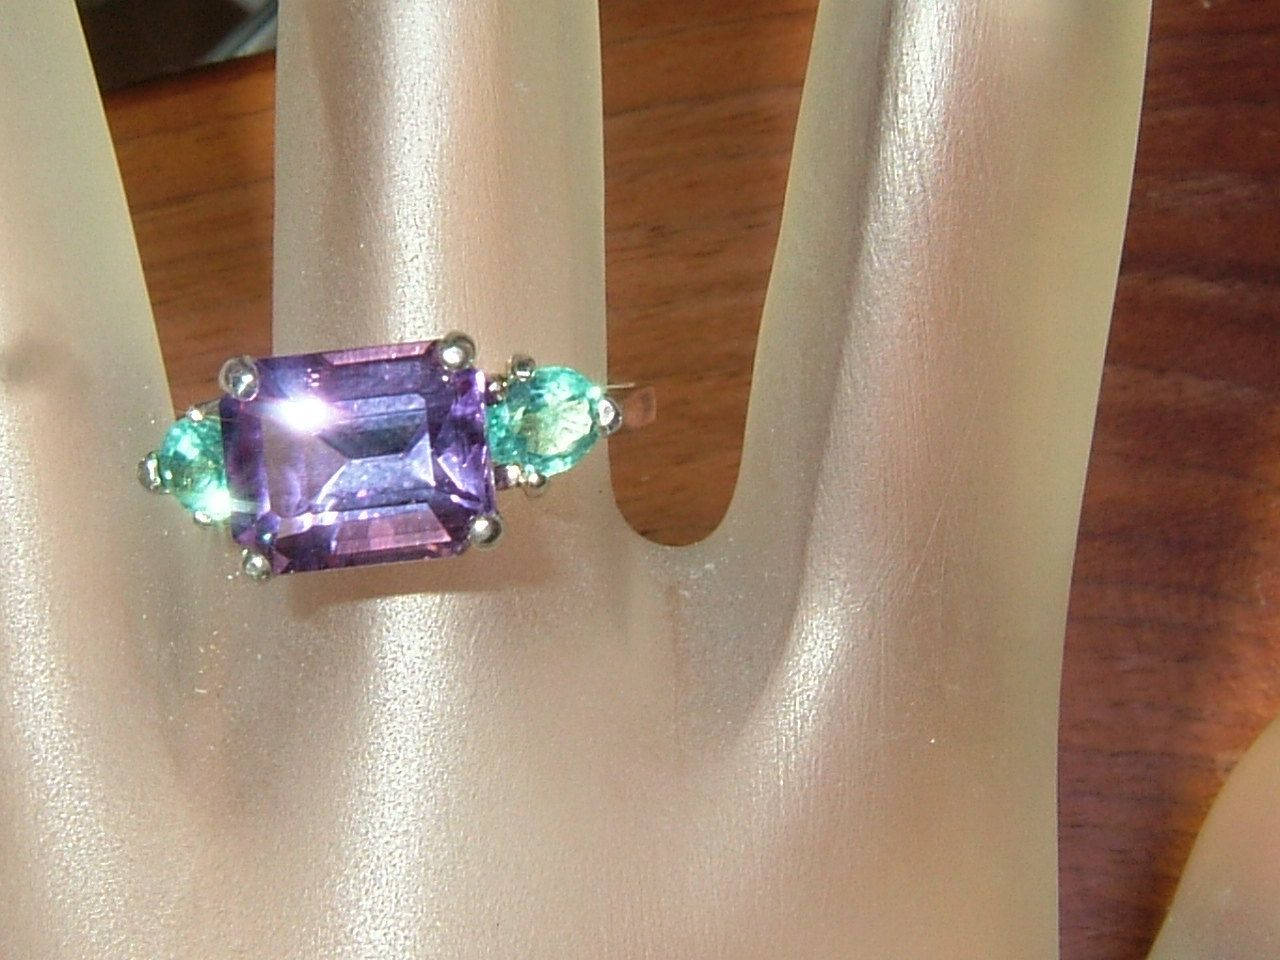 East West Bolivian Amethyst Ring Apatite Accents Sterling Silver by Gemsbygigialonia on Etsy *SOLD